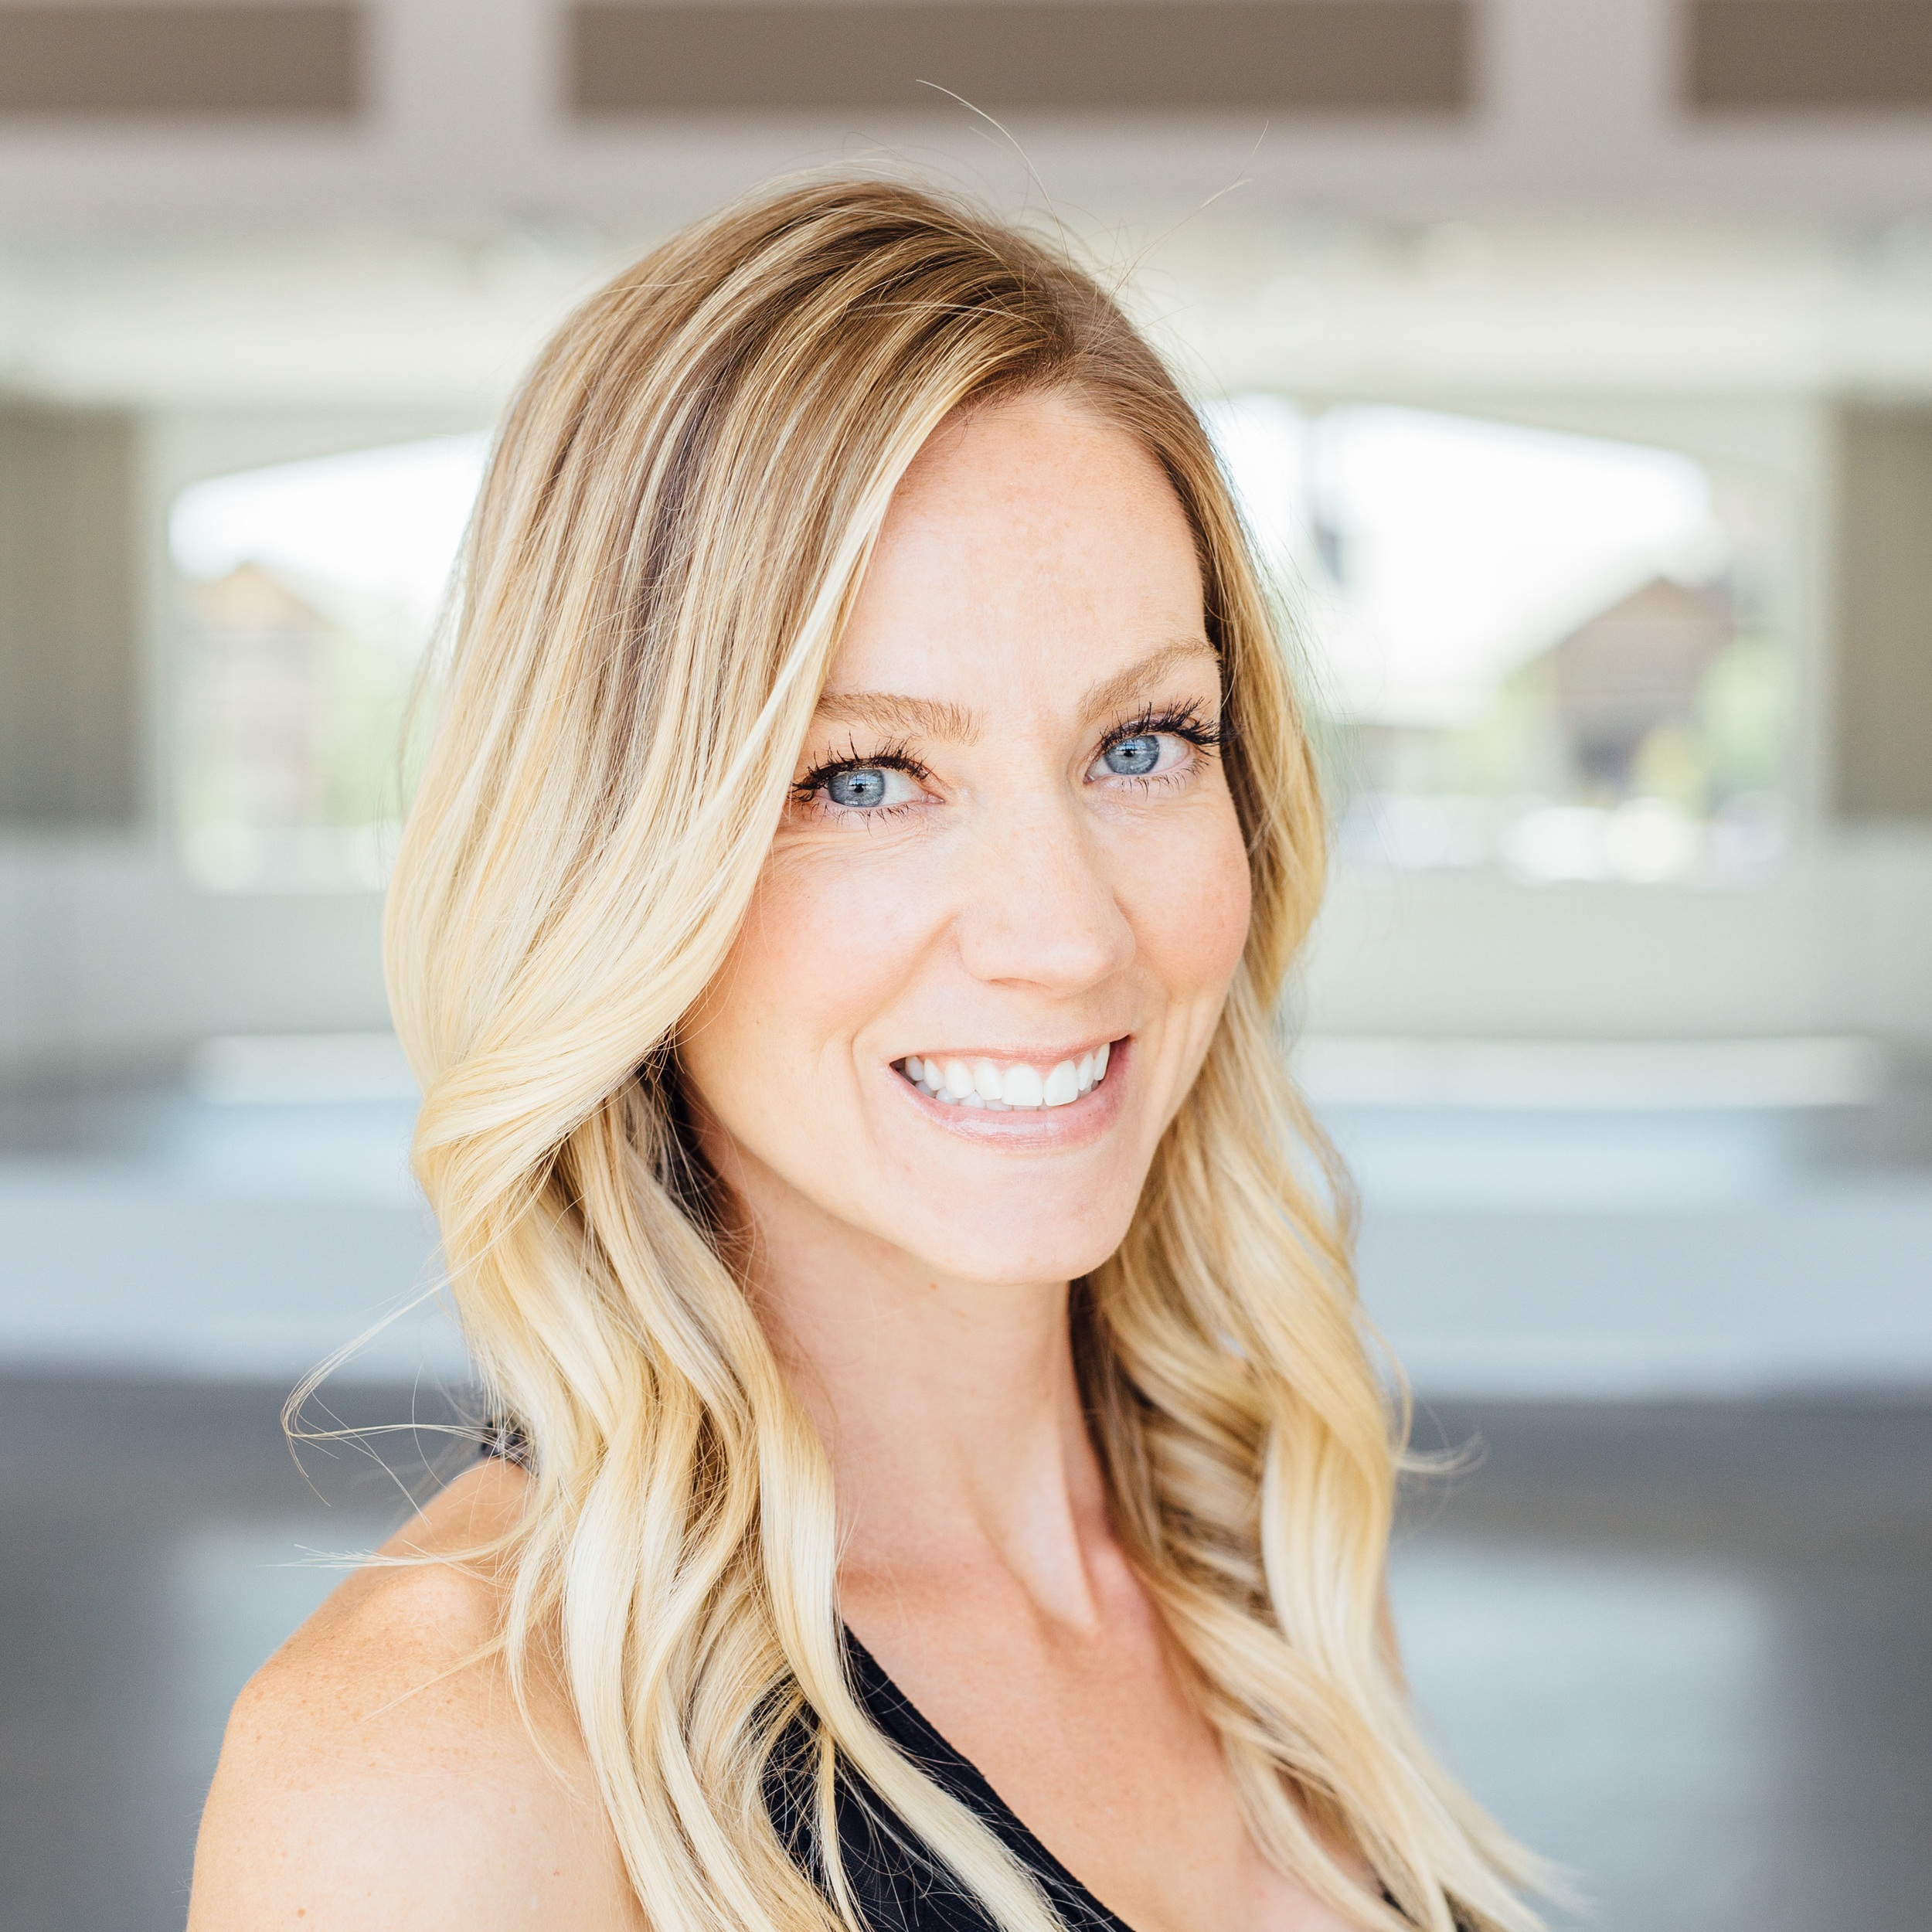 TRACI IRVING - Traci has been teaching dance for over 10 years, including five years as a professional choreographer and performer. She has a strong background in Ballet and Modern, but has also trained in Jazz, Hip Hop and African . . .